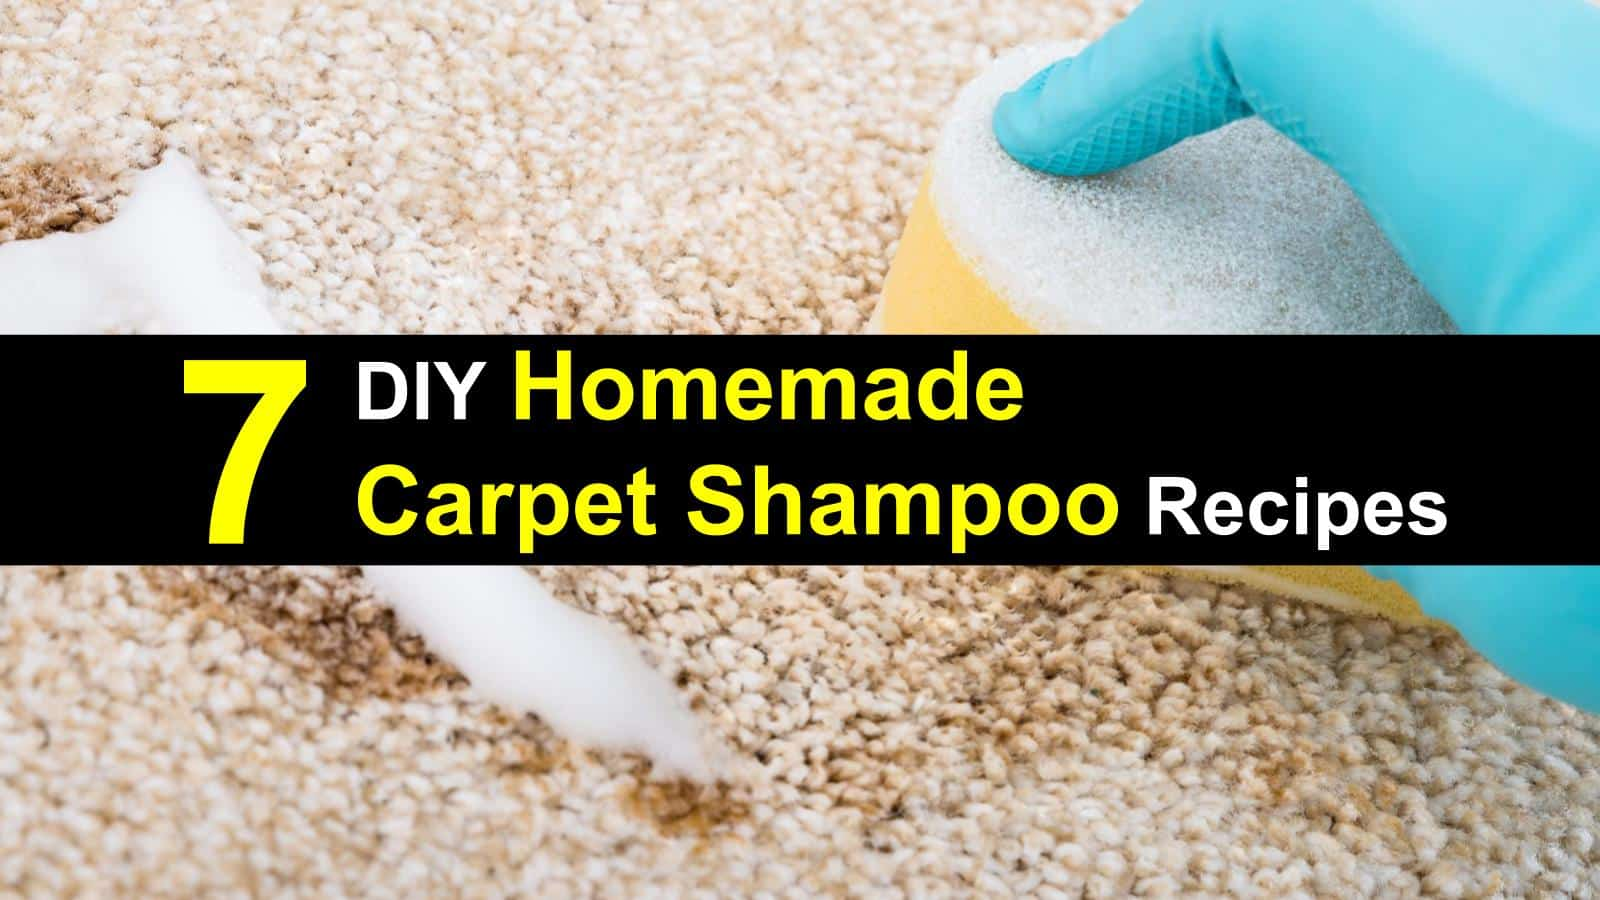 Stop Ing Expensive Carpet Cleaning Solution Use These Diy Shampoo Recipes To Get Your